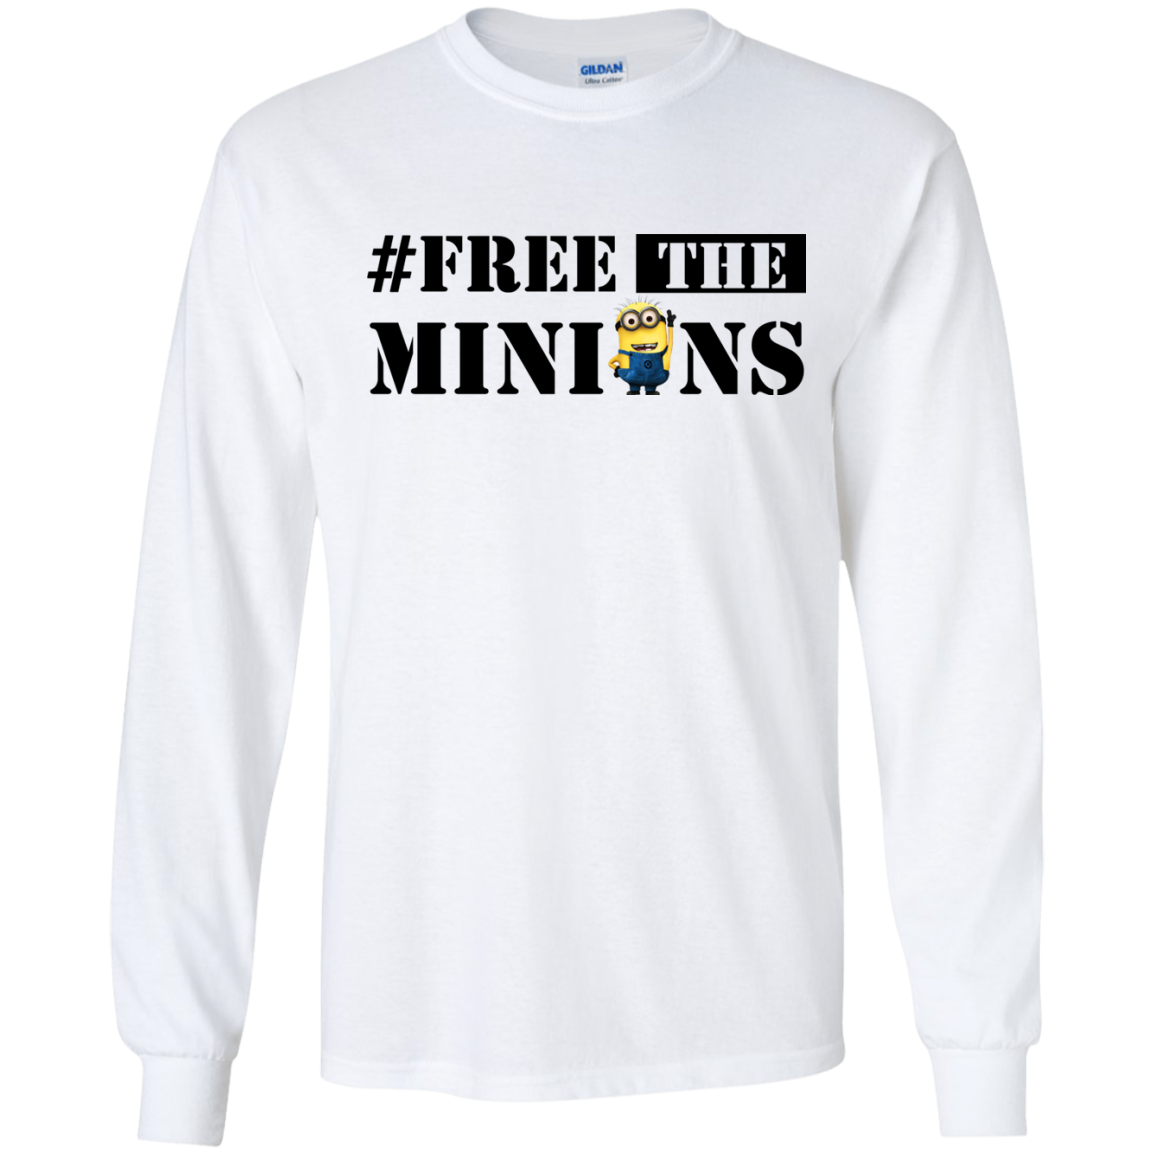 Free The Minions shirt, tank, sweater